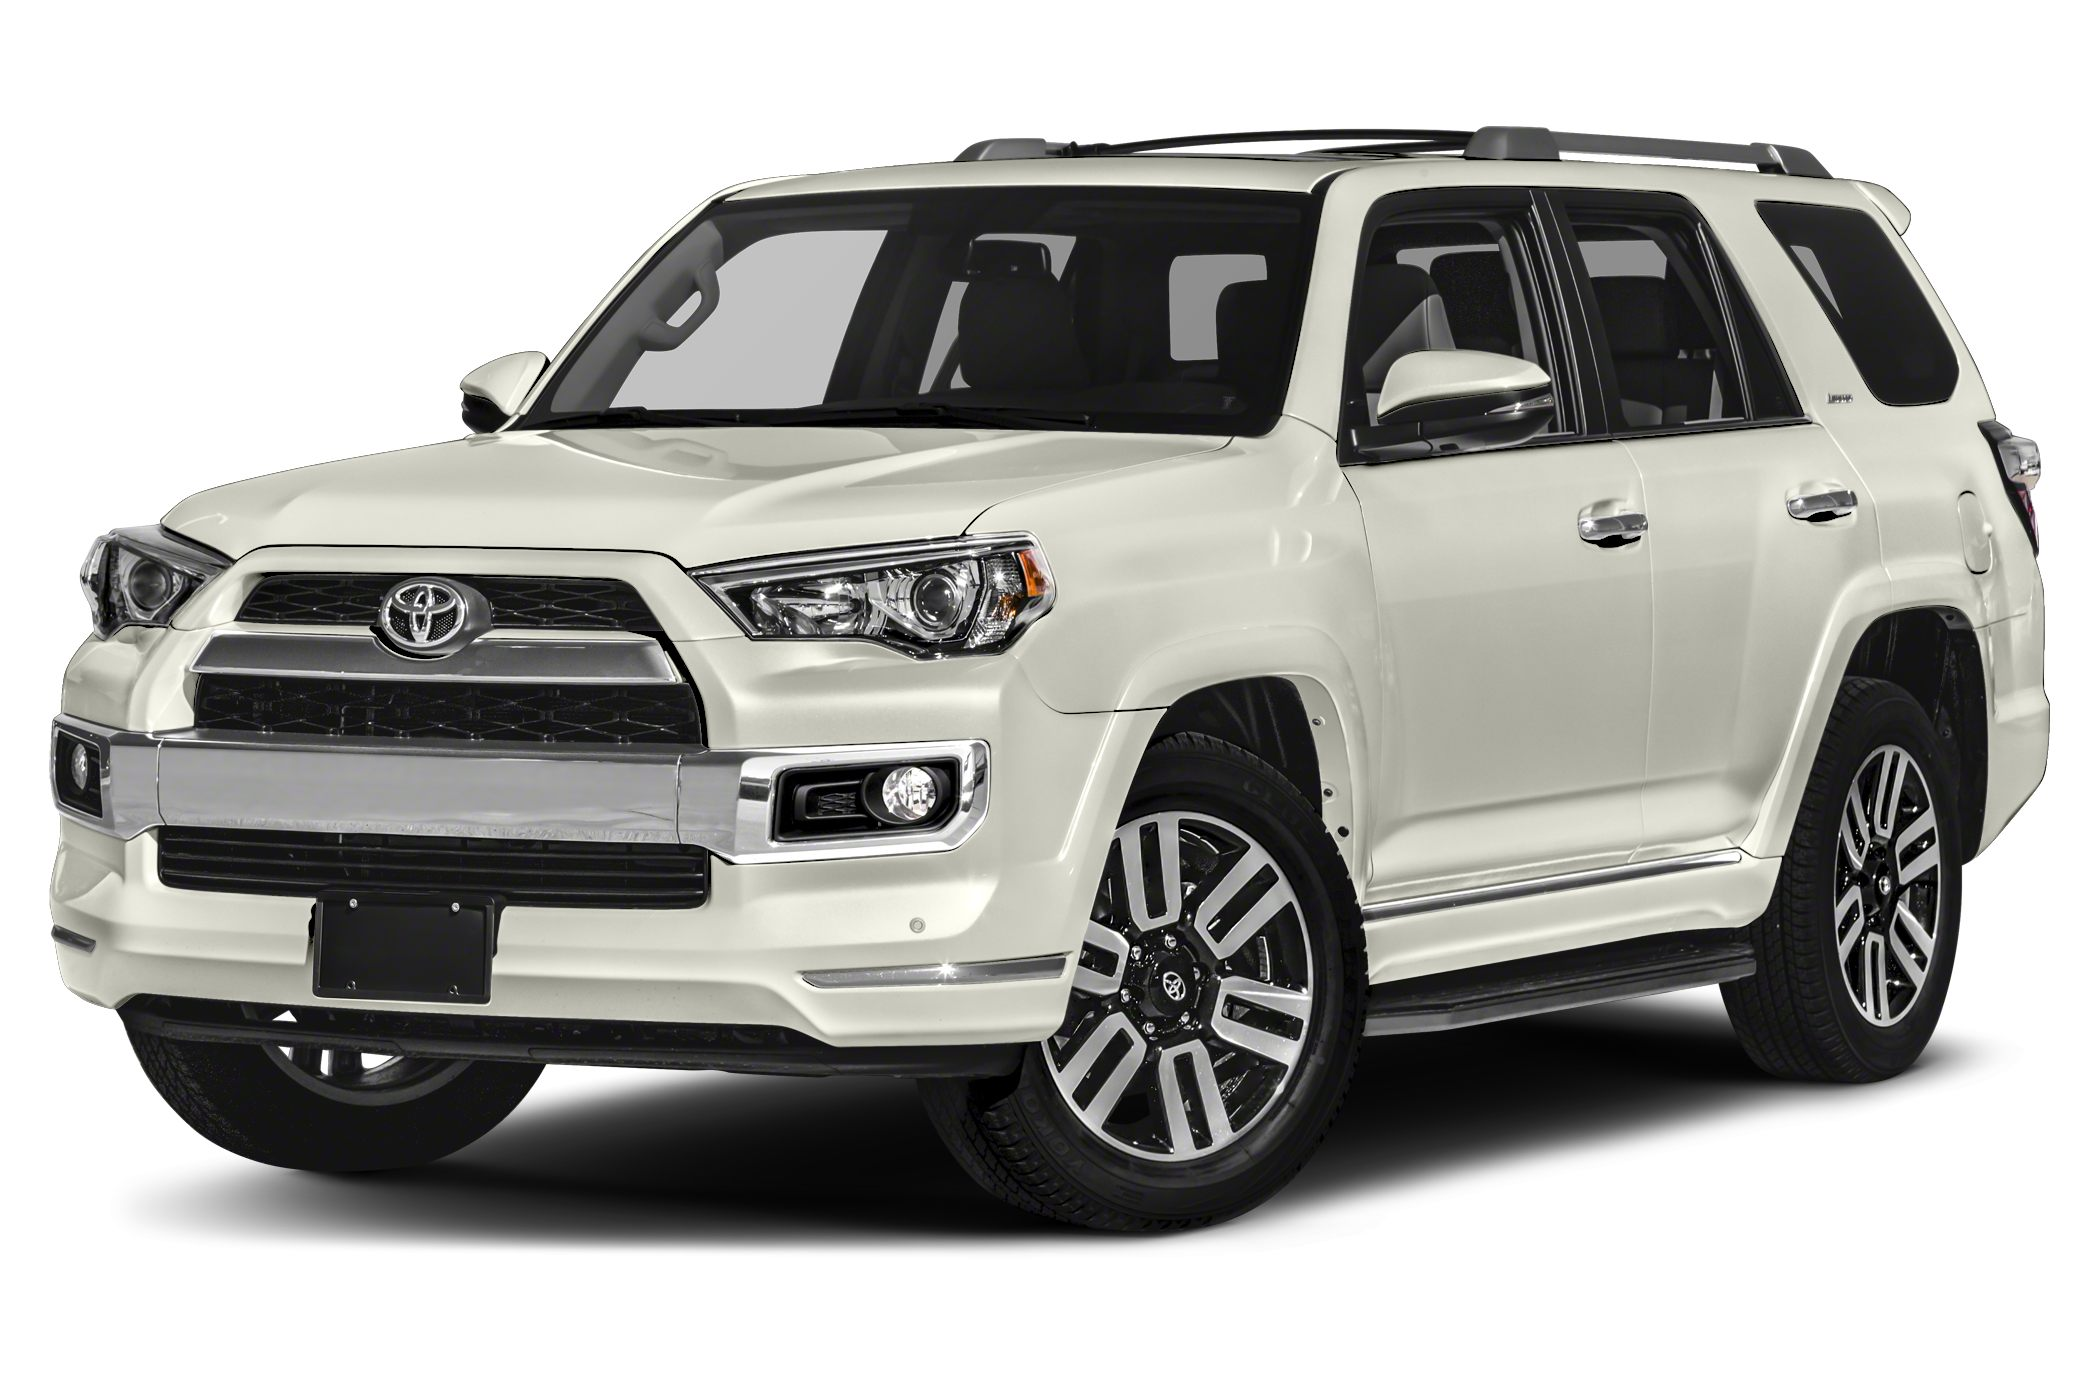 2016 Toyota 4Runner Limited Demo Vehicle Westboro Toyota is proud to present HASSLE FREE BUYING E